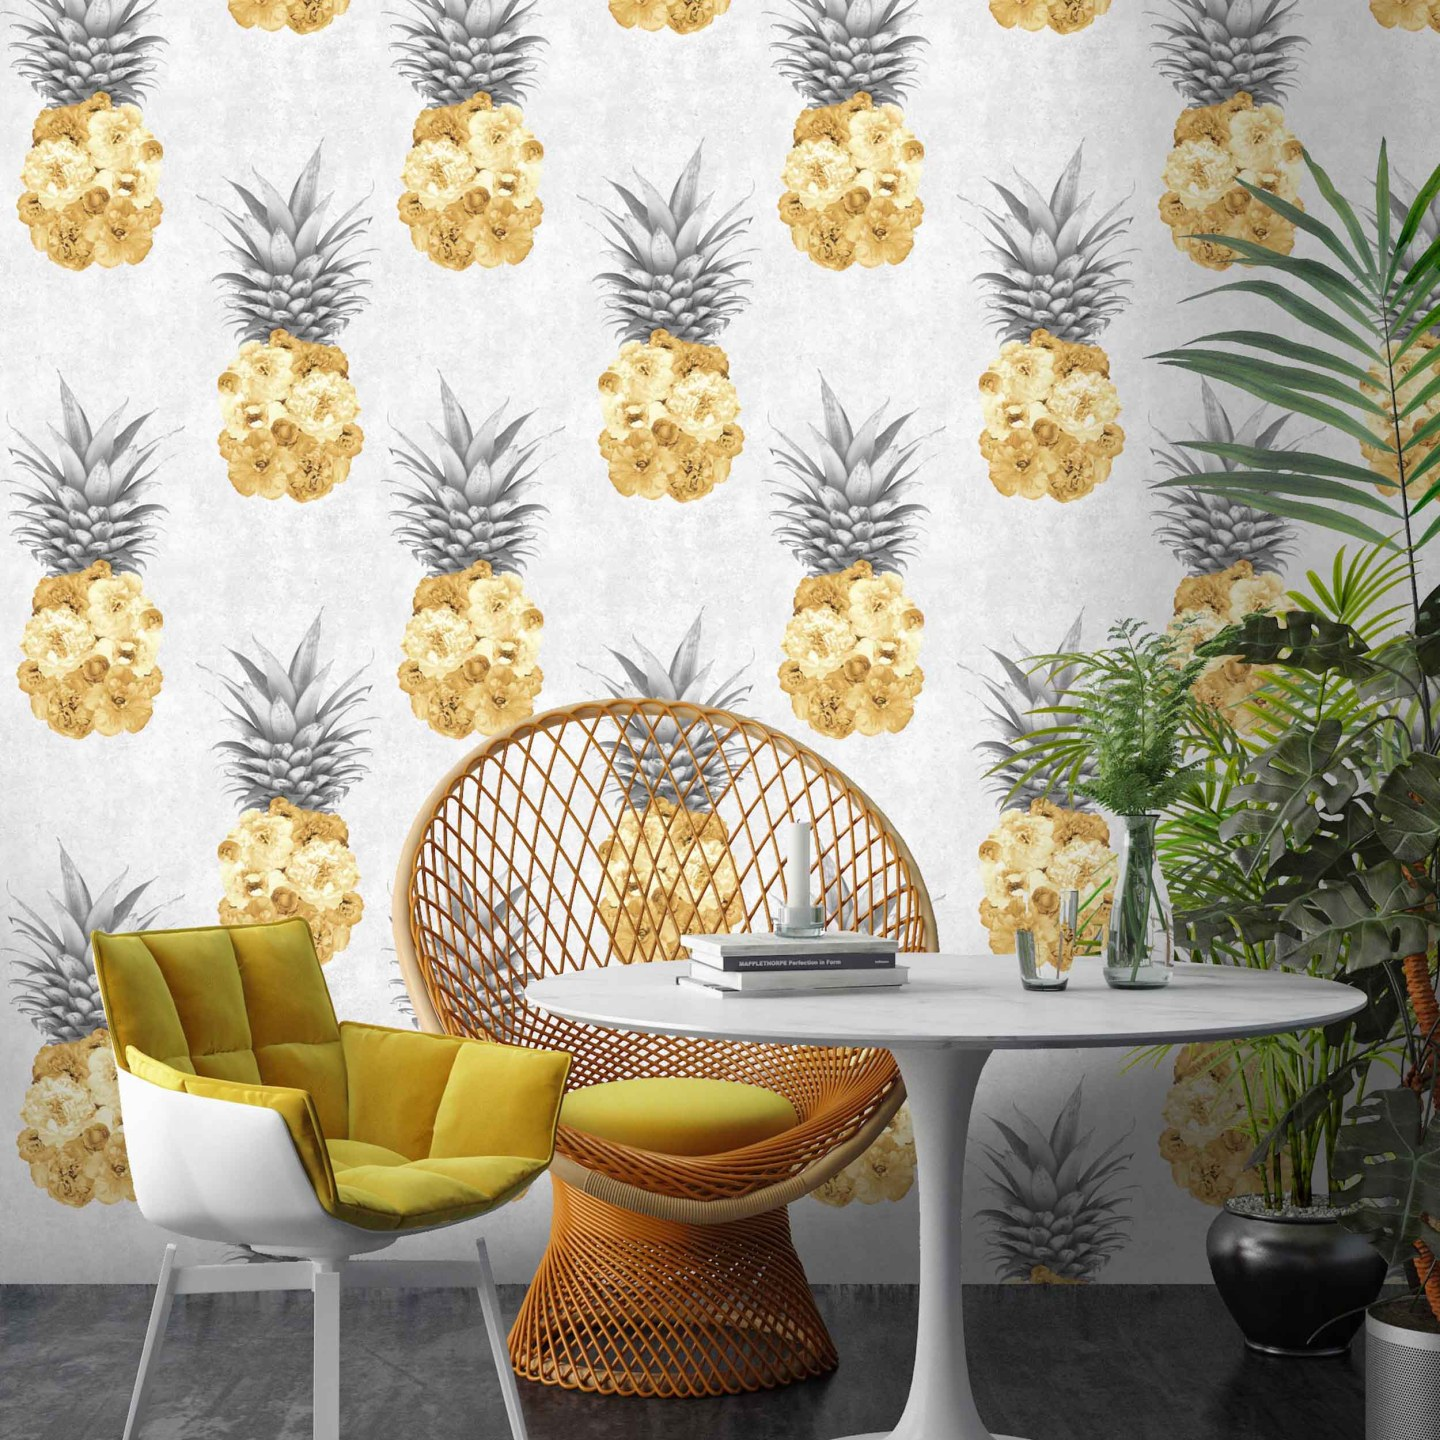 Woodchip-and-Magnolia-Ludic-Yellow-Pineapple-Wallpaper-1730876-1-1440x1440 Pineapple Decor: Tips for Decorating Your Home with Southern Hospitality